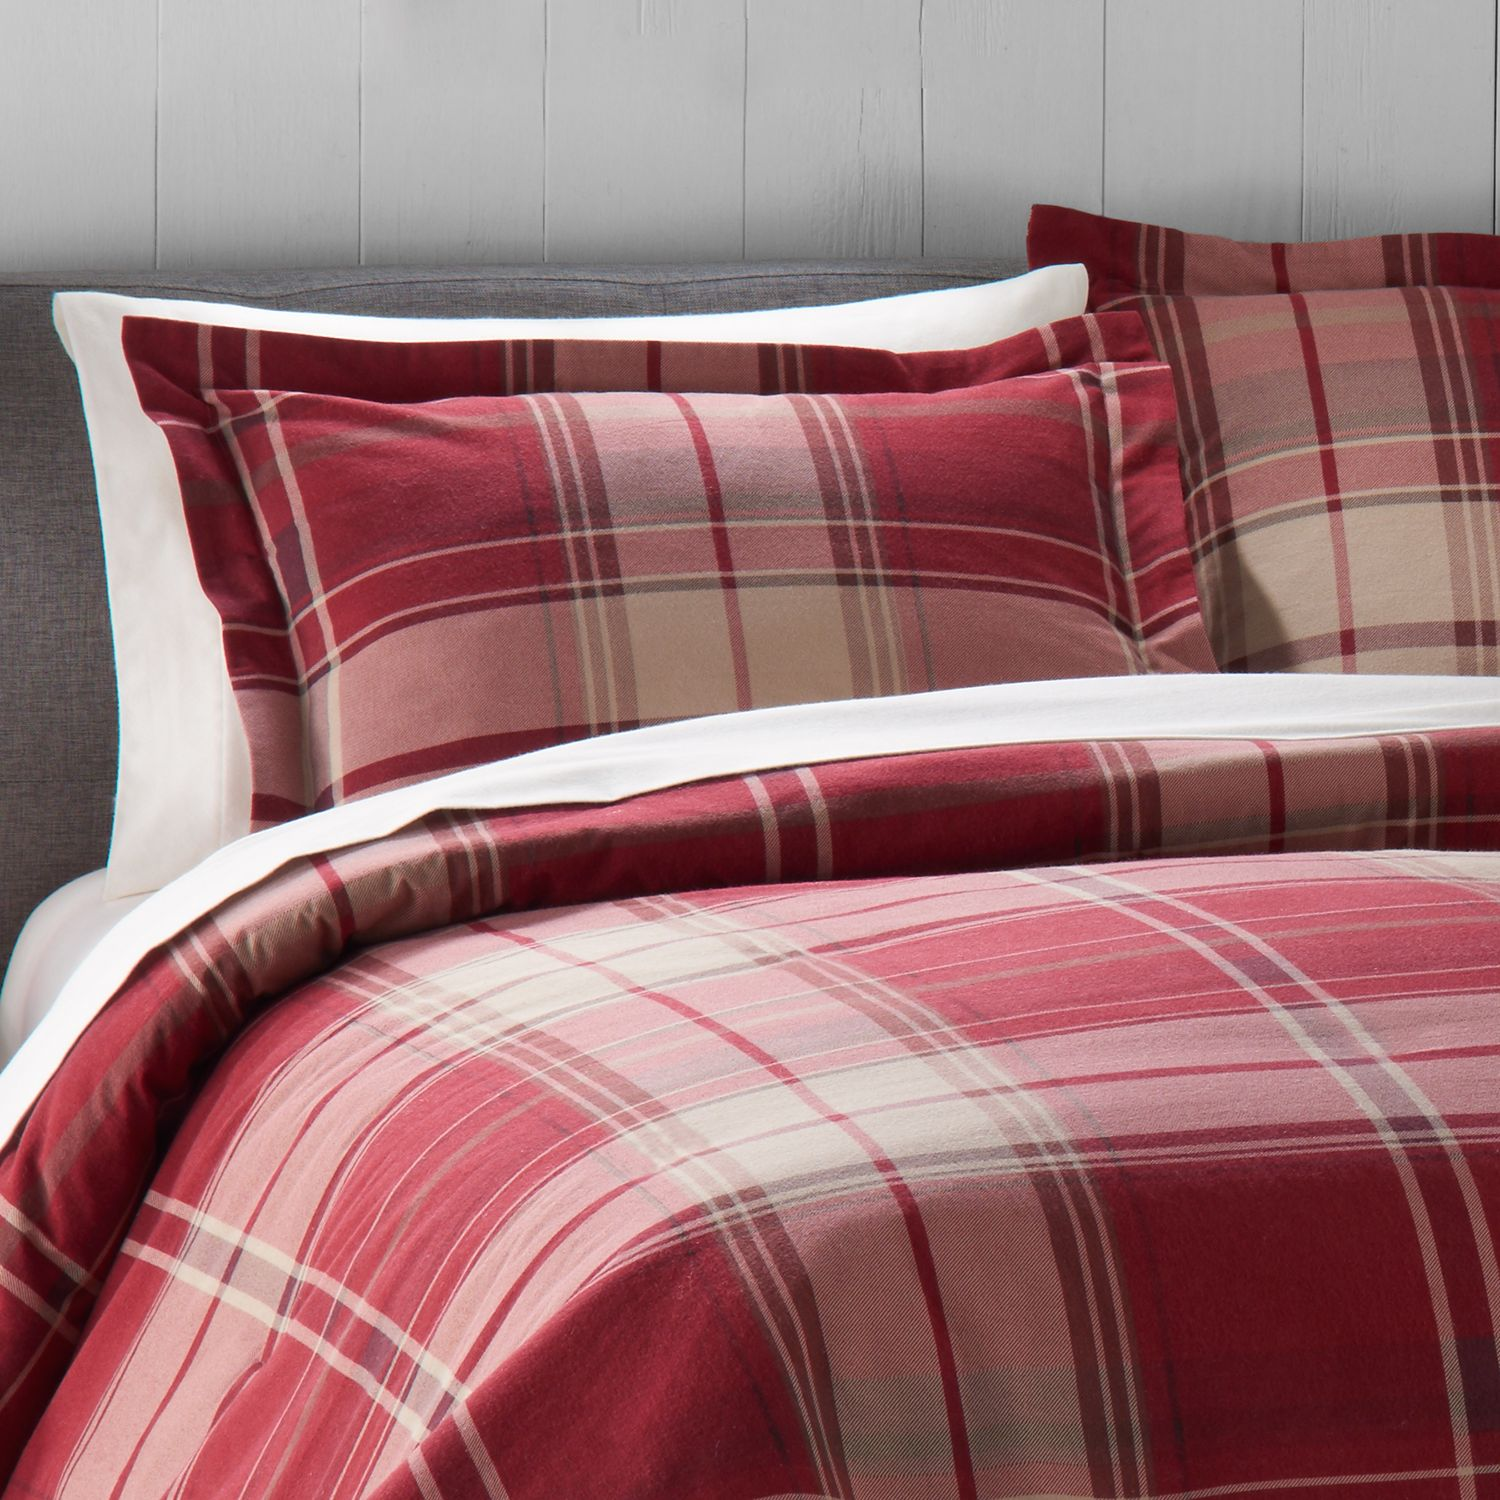 Cuddl Duds Red Plaid Flannel Duvet Cover Set